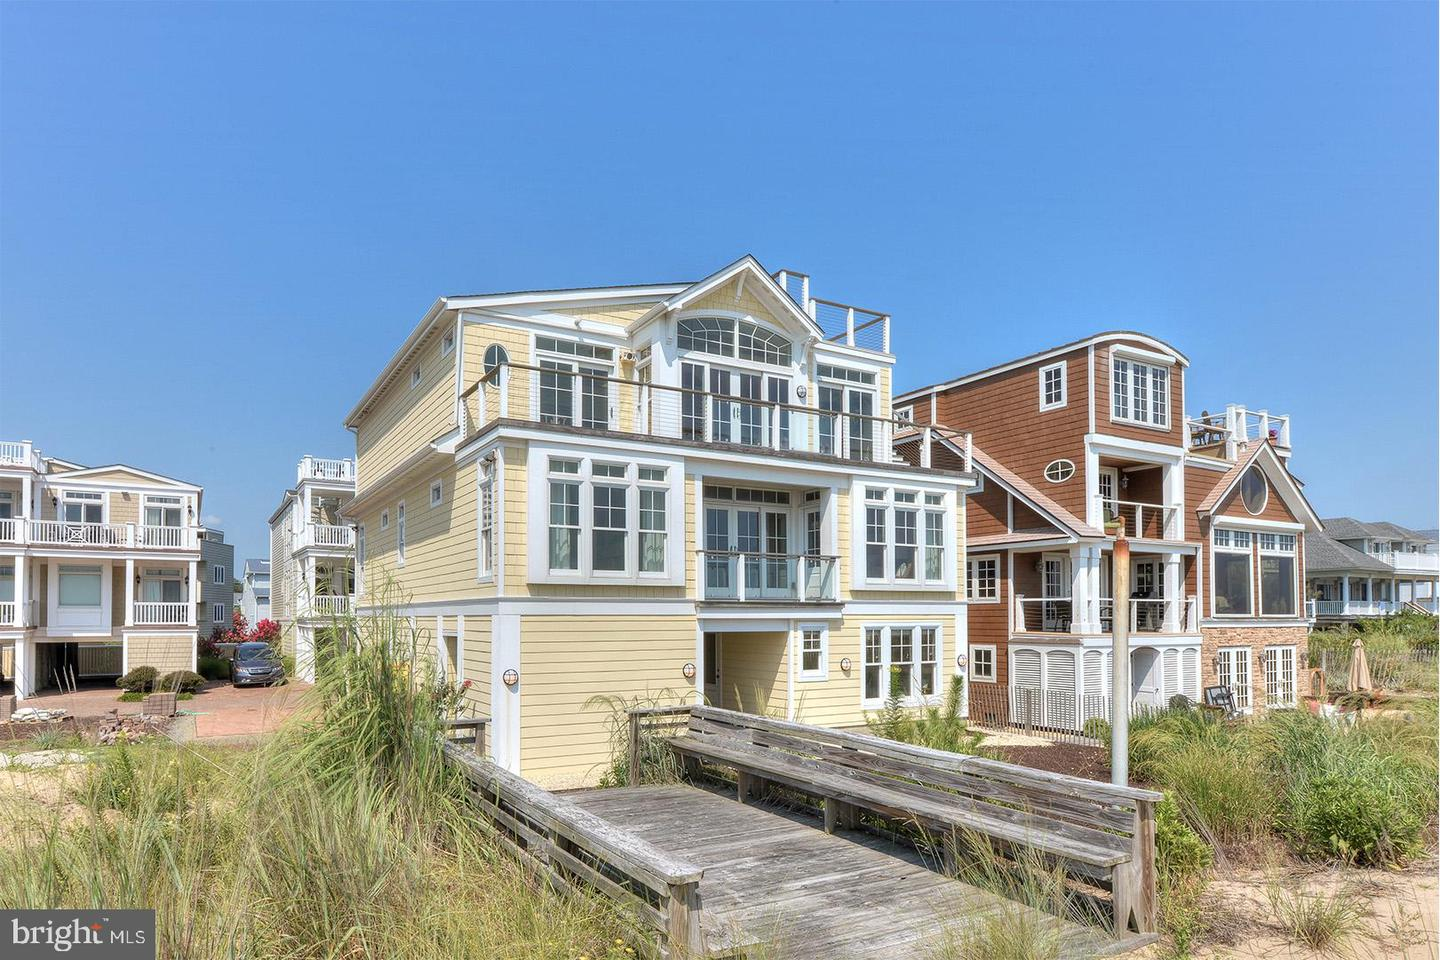 DESU100159-301987211493-2019-09-12-15-11-36 5 Clayton St | Dewey Beach, DE Real Estate For Sale | MLS# Desu100159  - David T. King Realtor